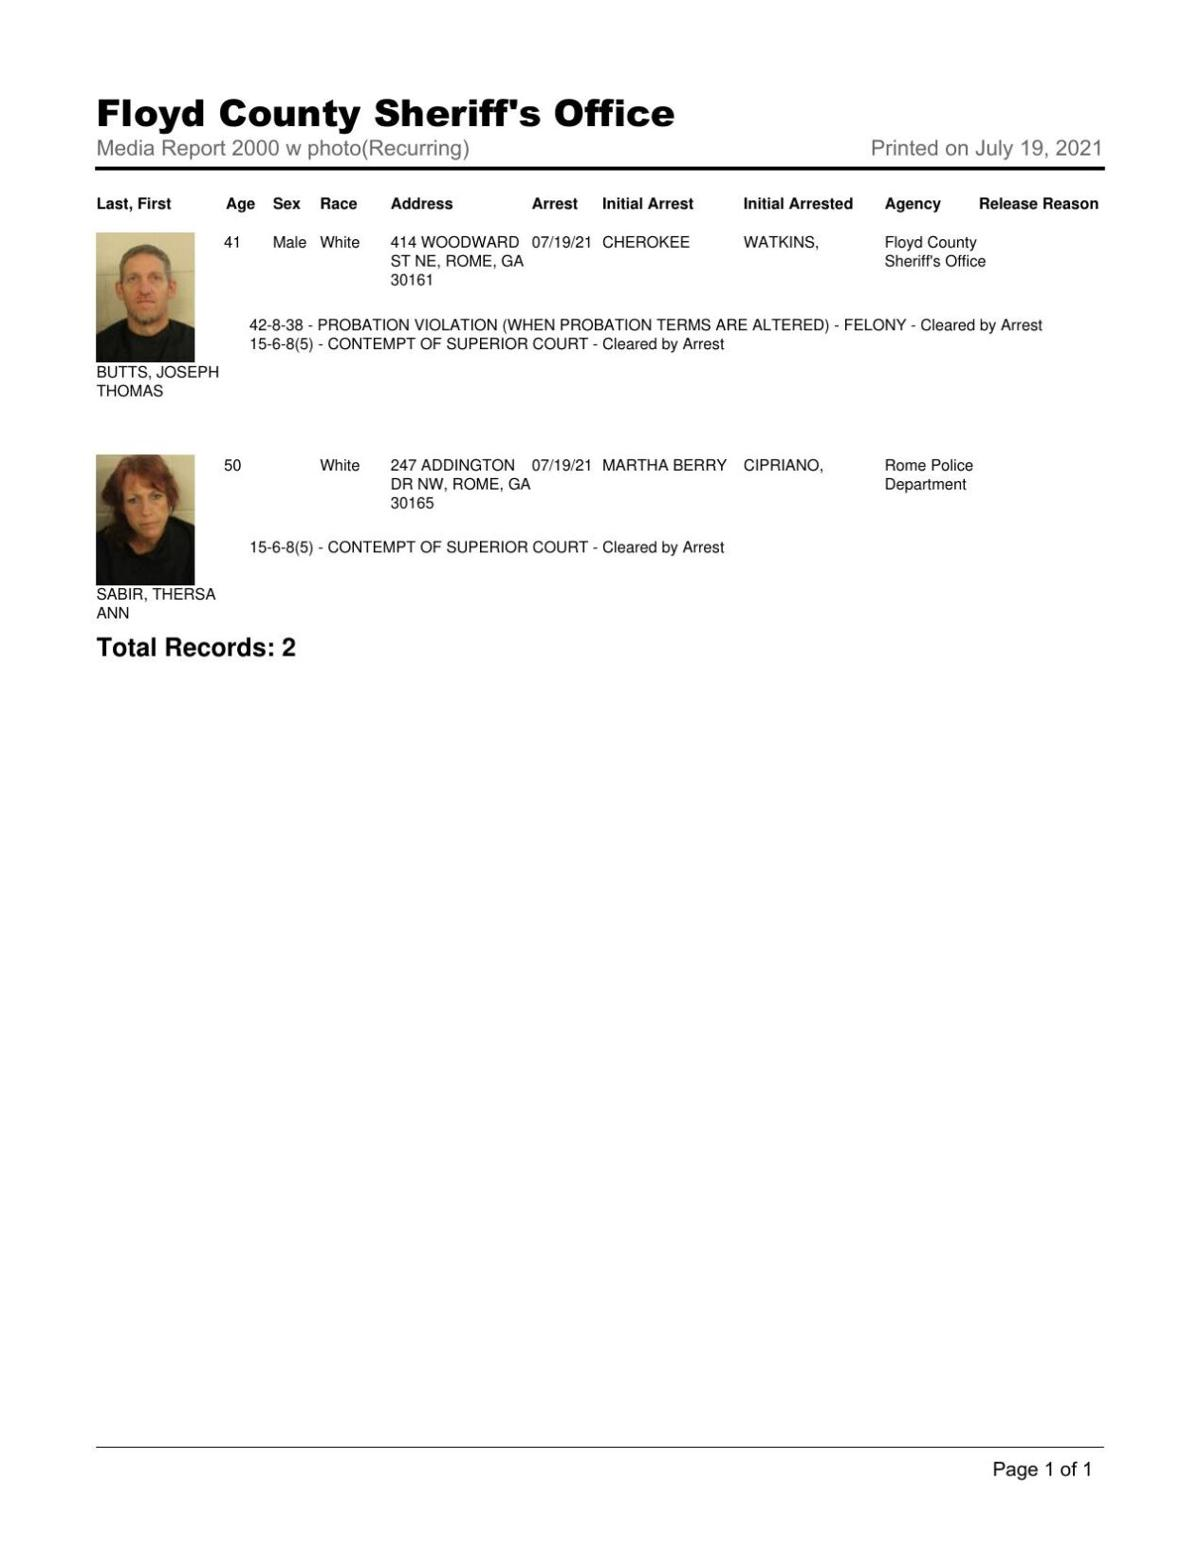 Floyd County Jail report for 8 pm Tuesday, July 19